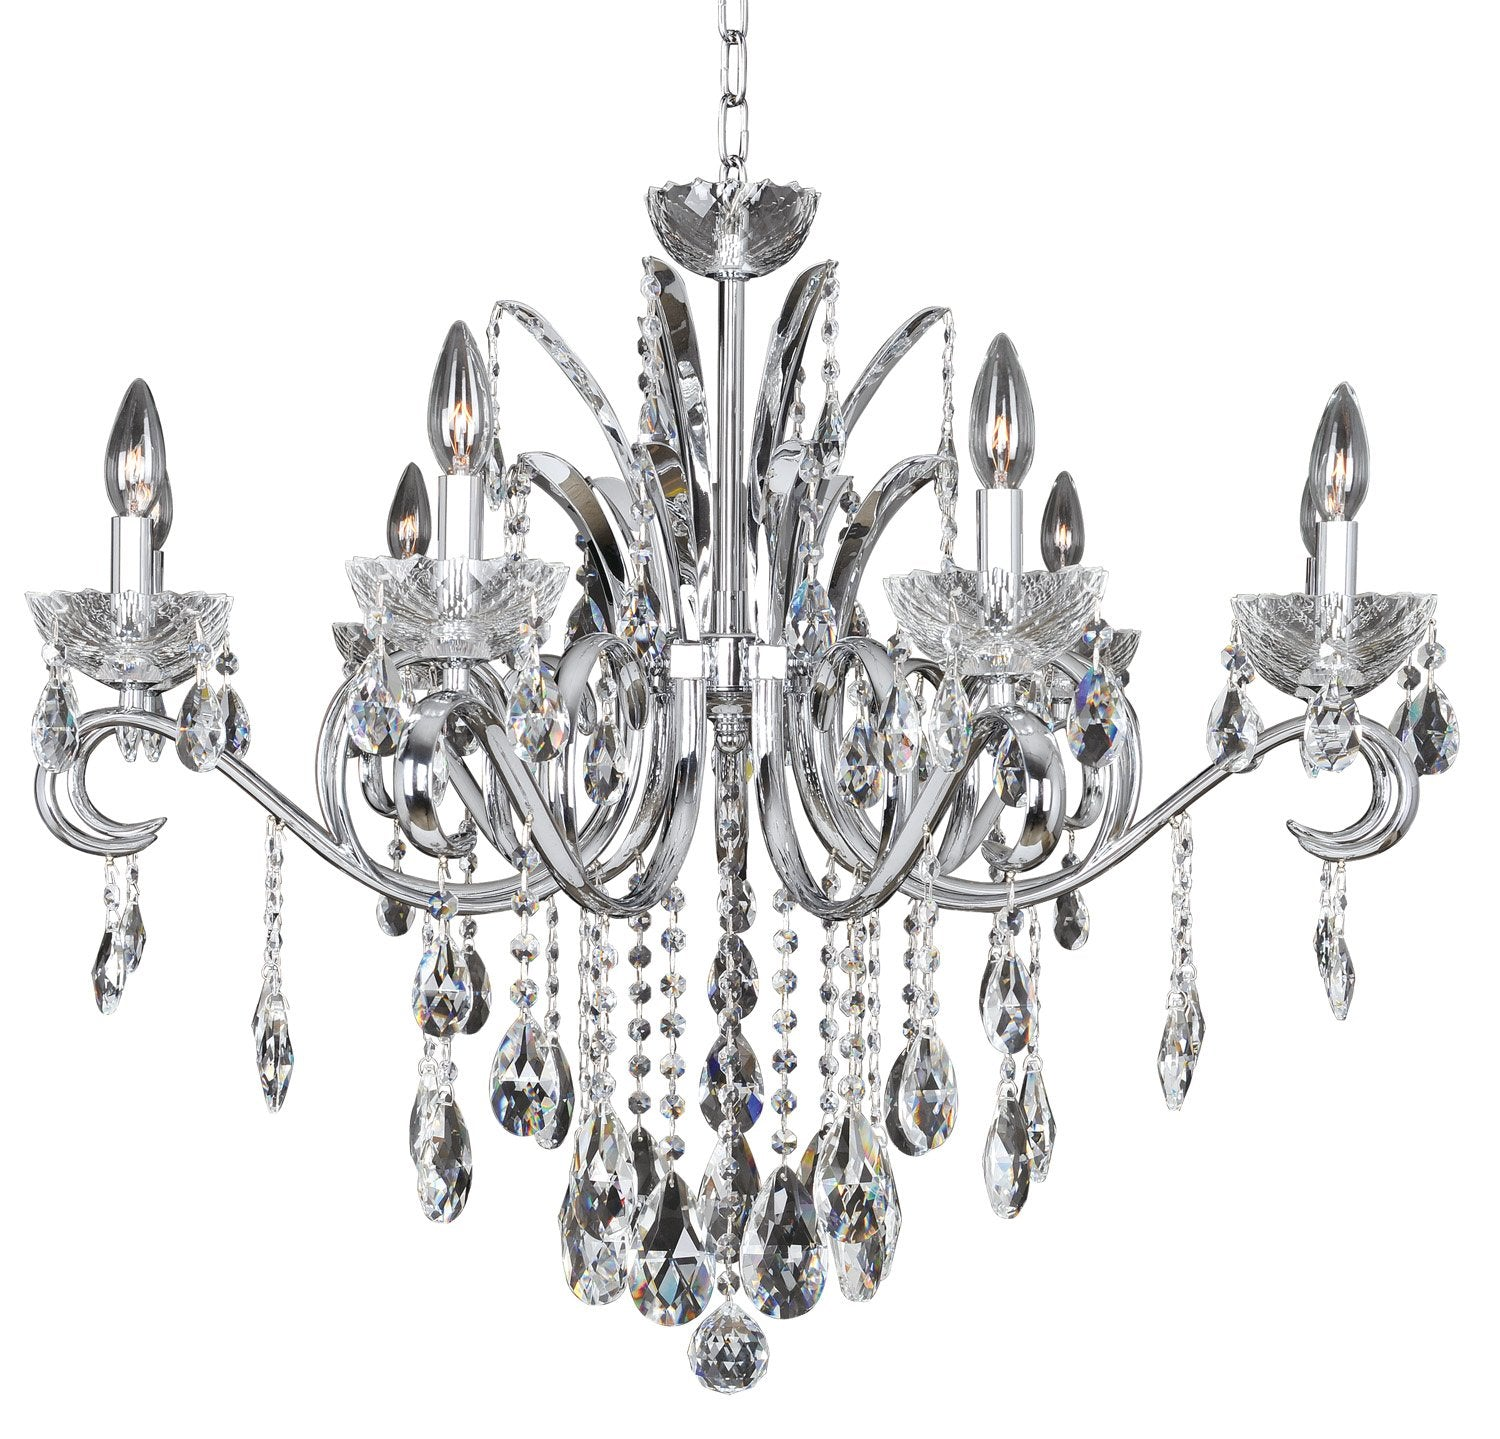 Catalani 9 Light Chandelier